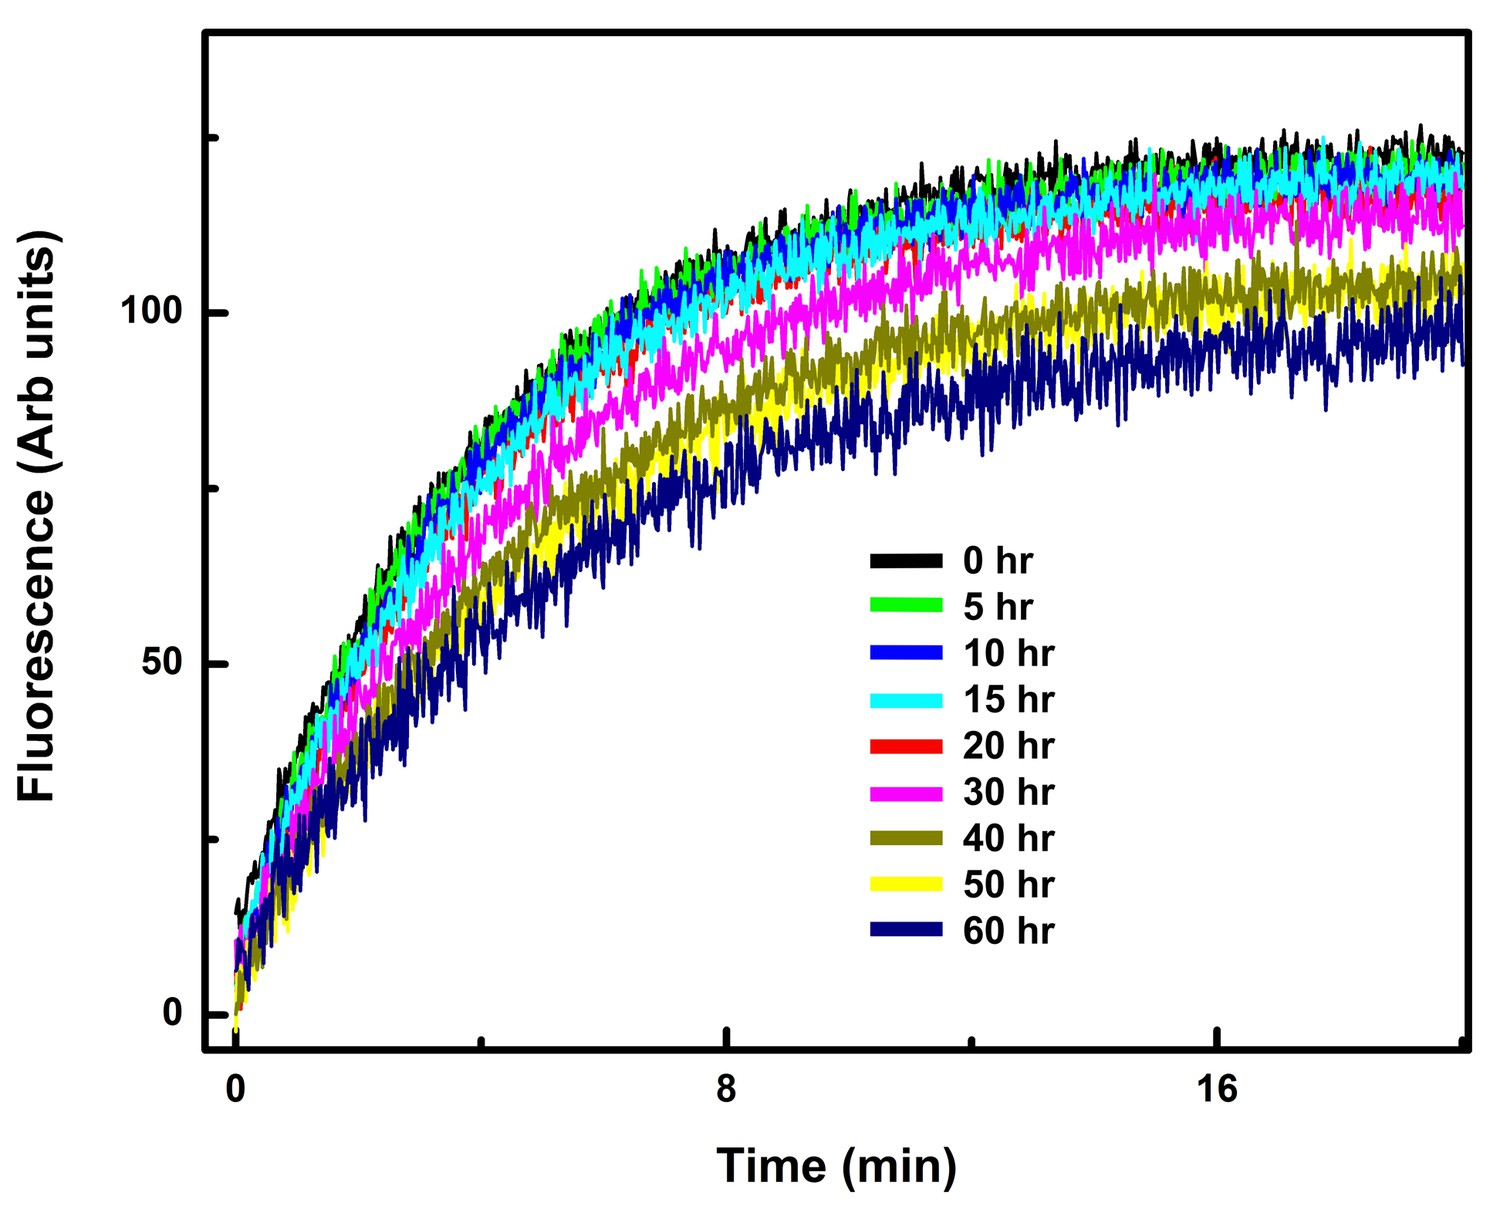 hight resolution of the g i1 ric 8a complex is stable over the period in which the hdx experiments were performed